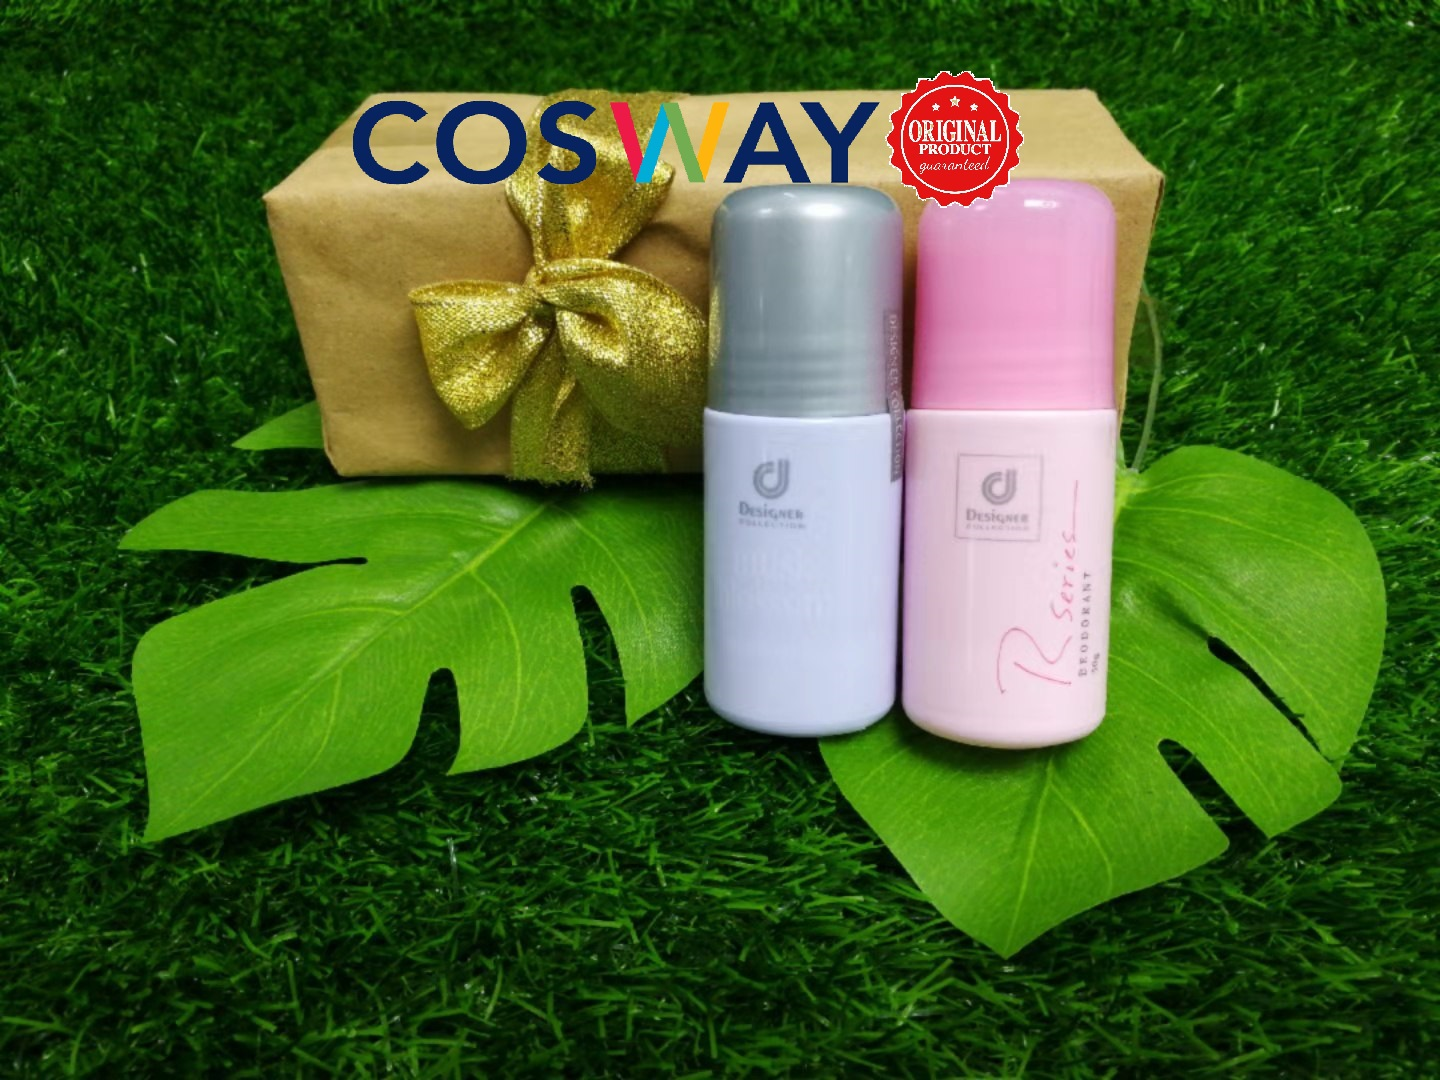 GS013- Cosway Designer Collection Deodorant Series - Gift Set 2in1 (Original Cosway)